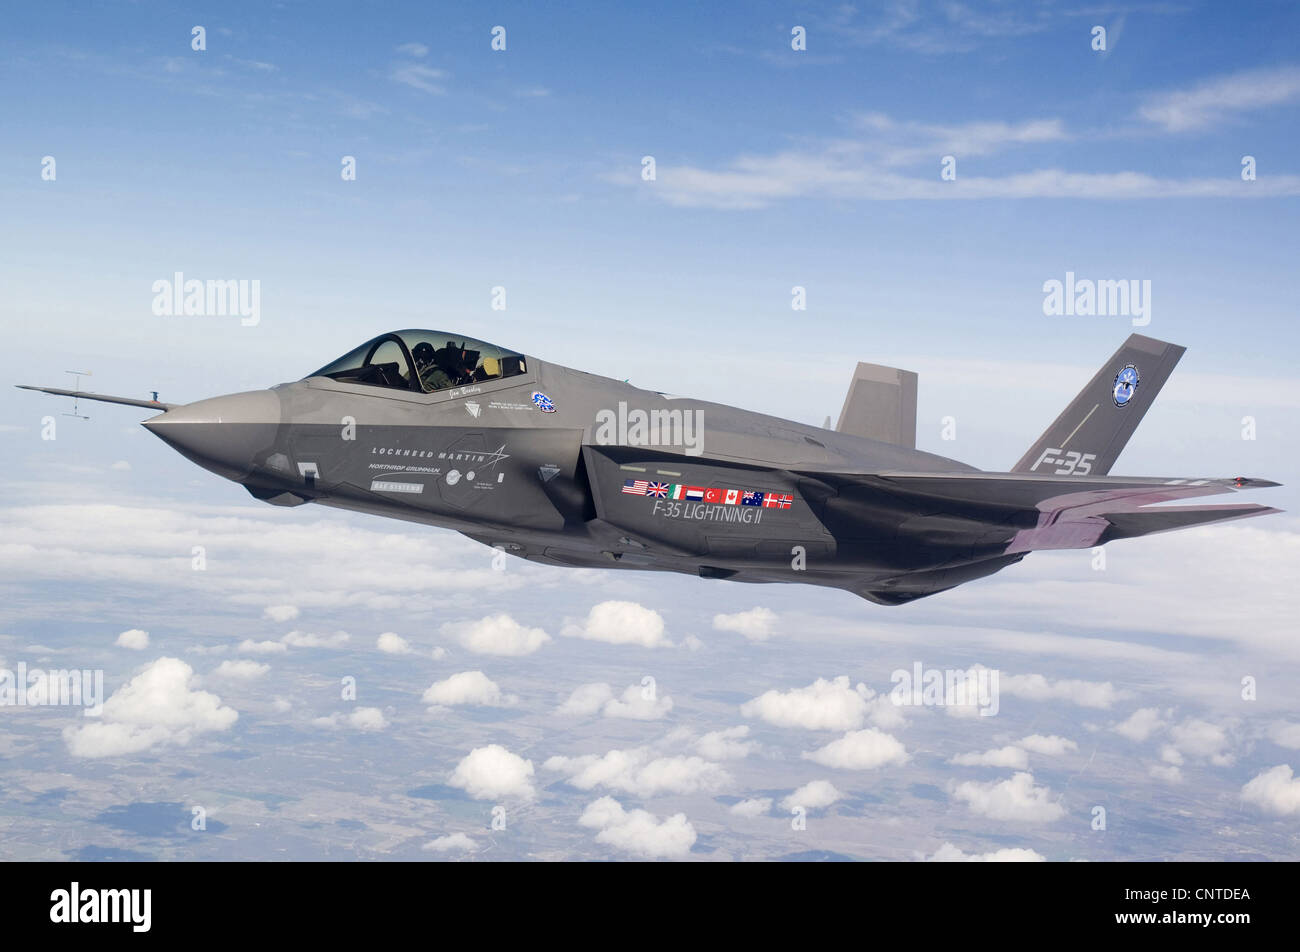 US Air Force F-35 Joint Strike Fighter aircraft in formation September 10, 2008 at Edwards Air Force Base, CA. - Stock Image